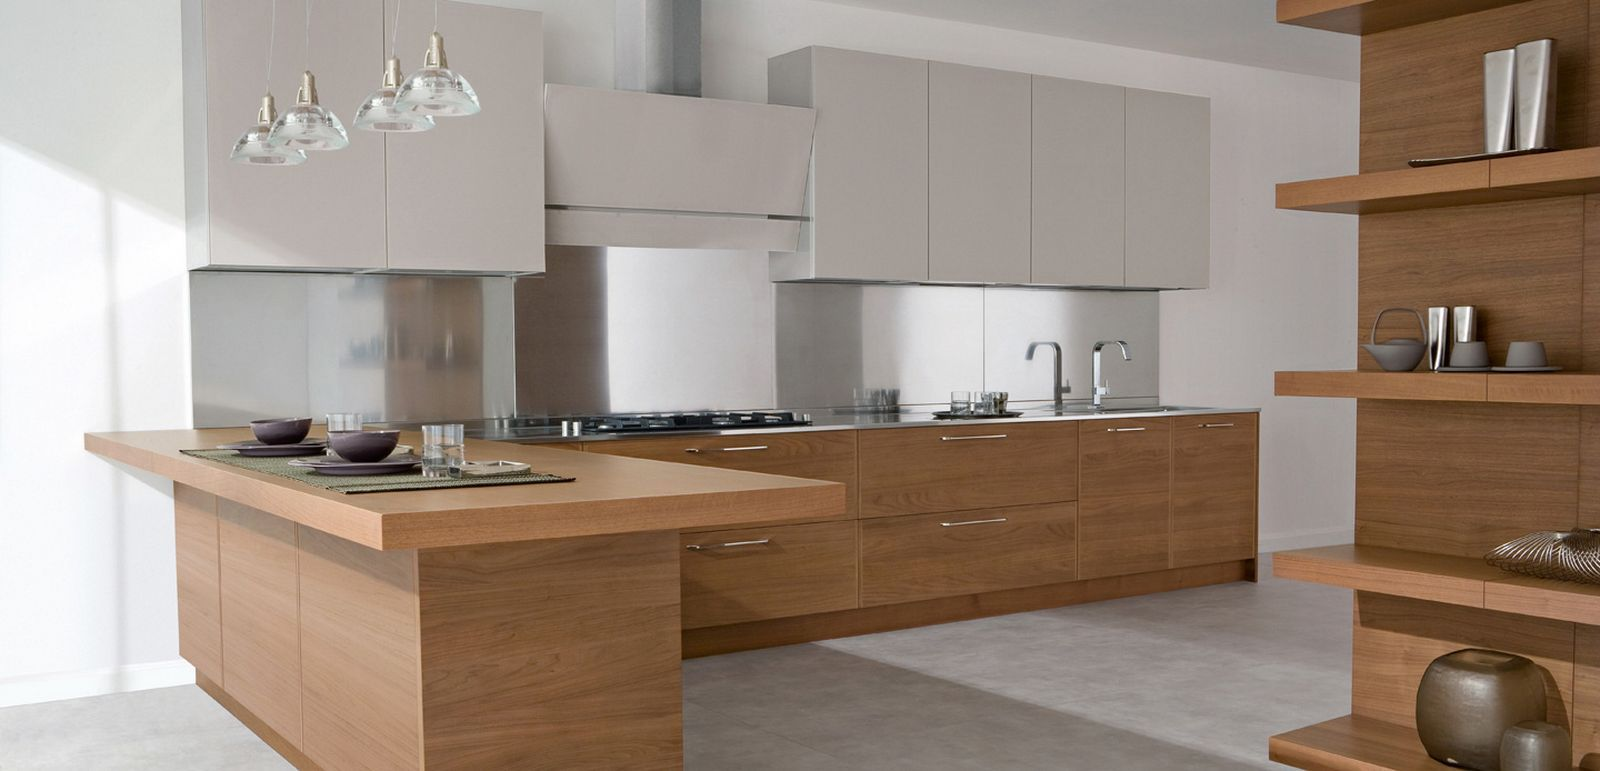 Modern white and wood kitchen designs - 30 Elegant Wooden Kitchen Designs To Give A Rustic Look